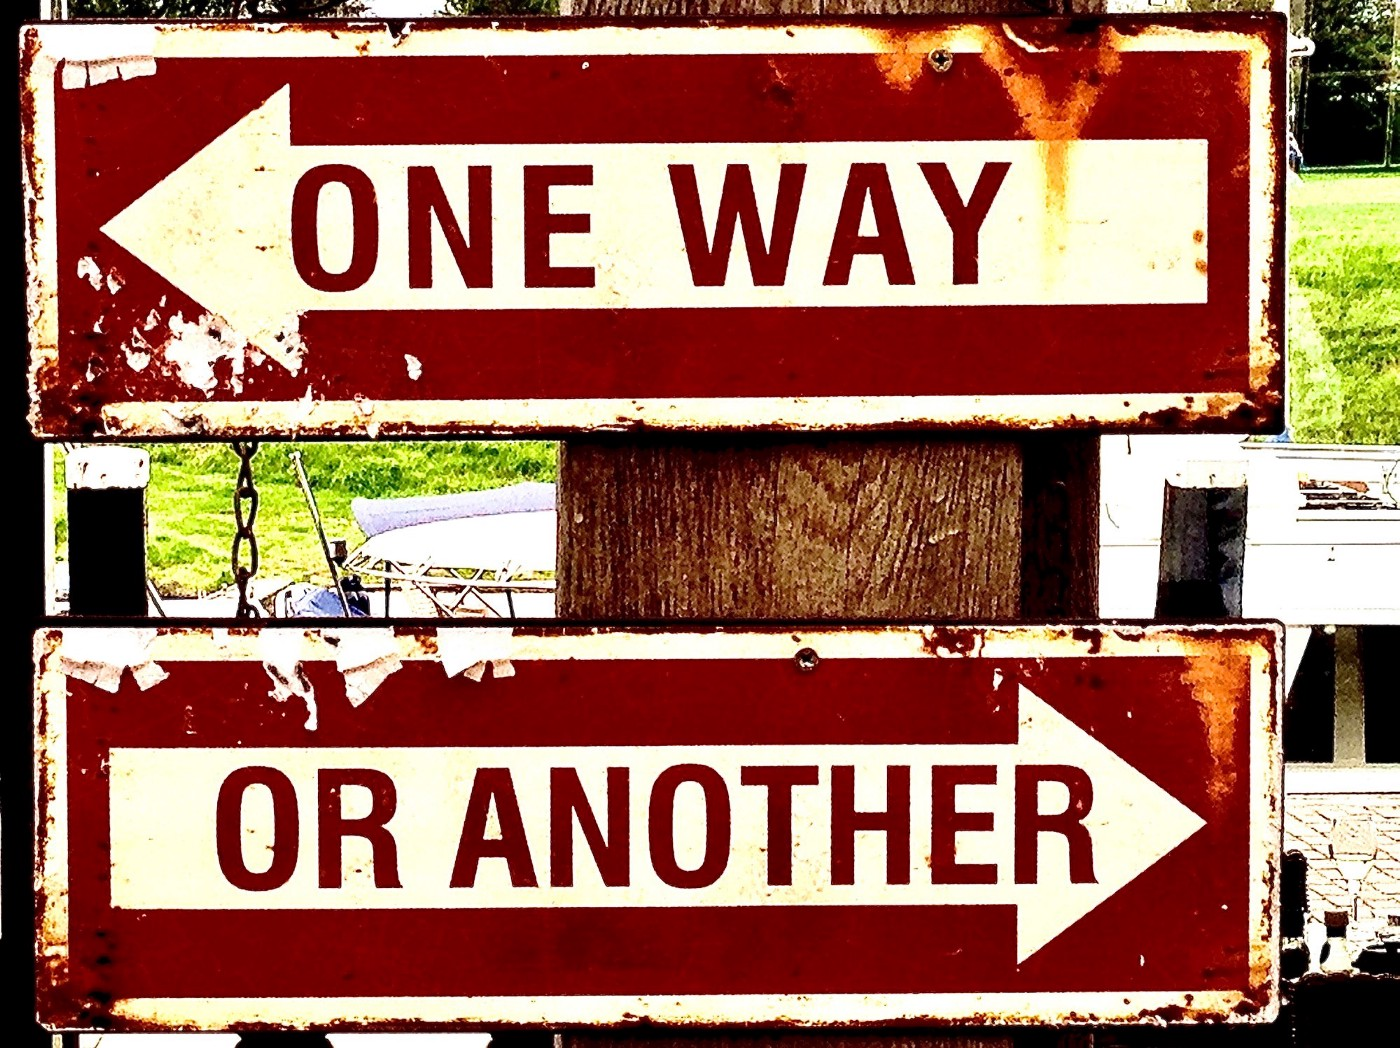 Two red signs. One points left and says 'one way,' the other points right and says 'or another.'